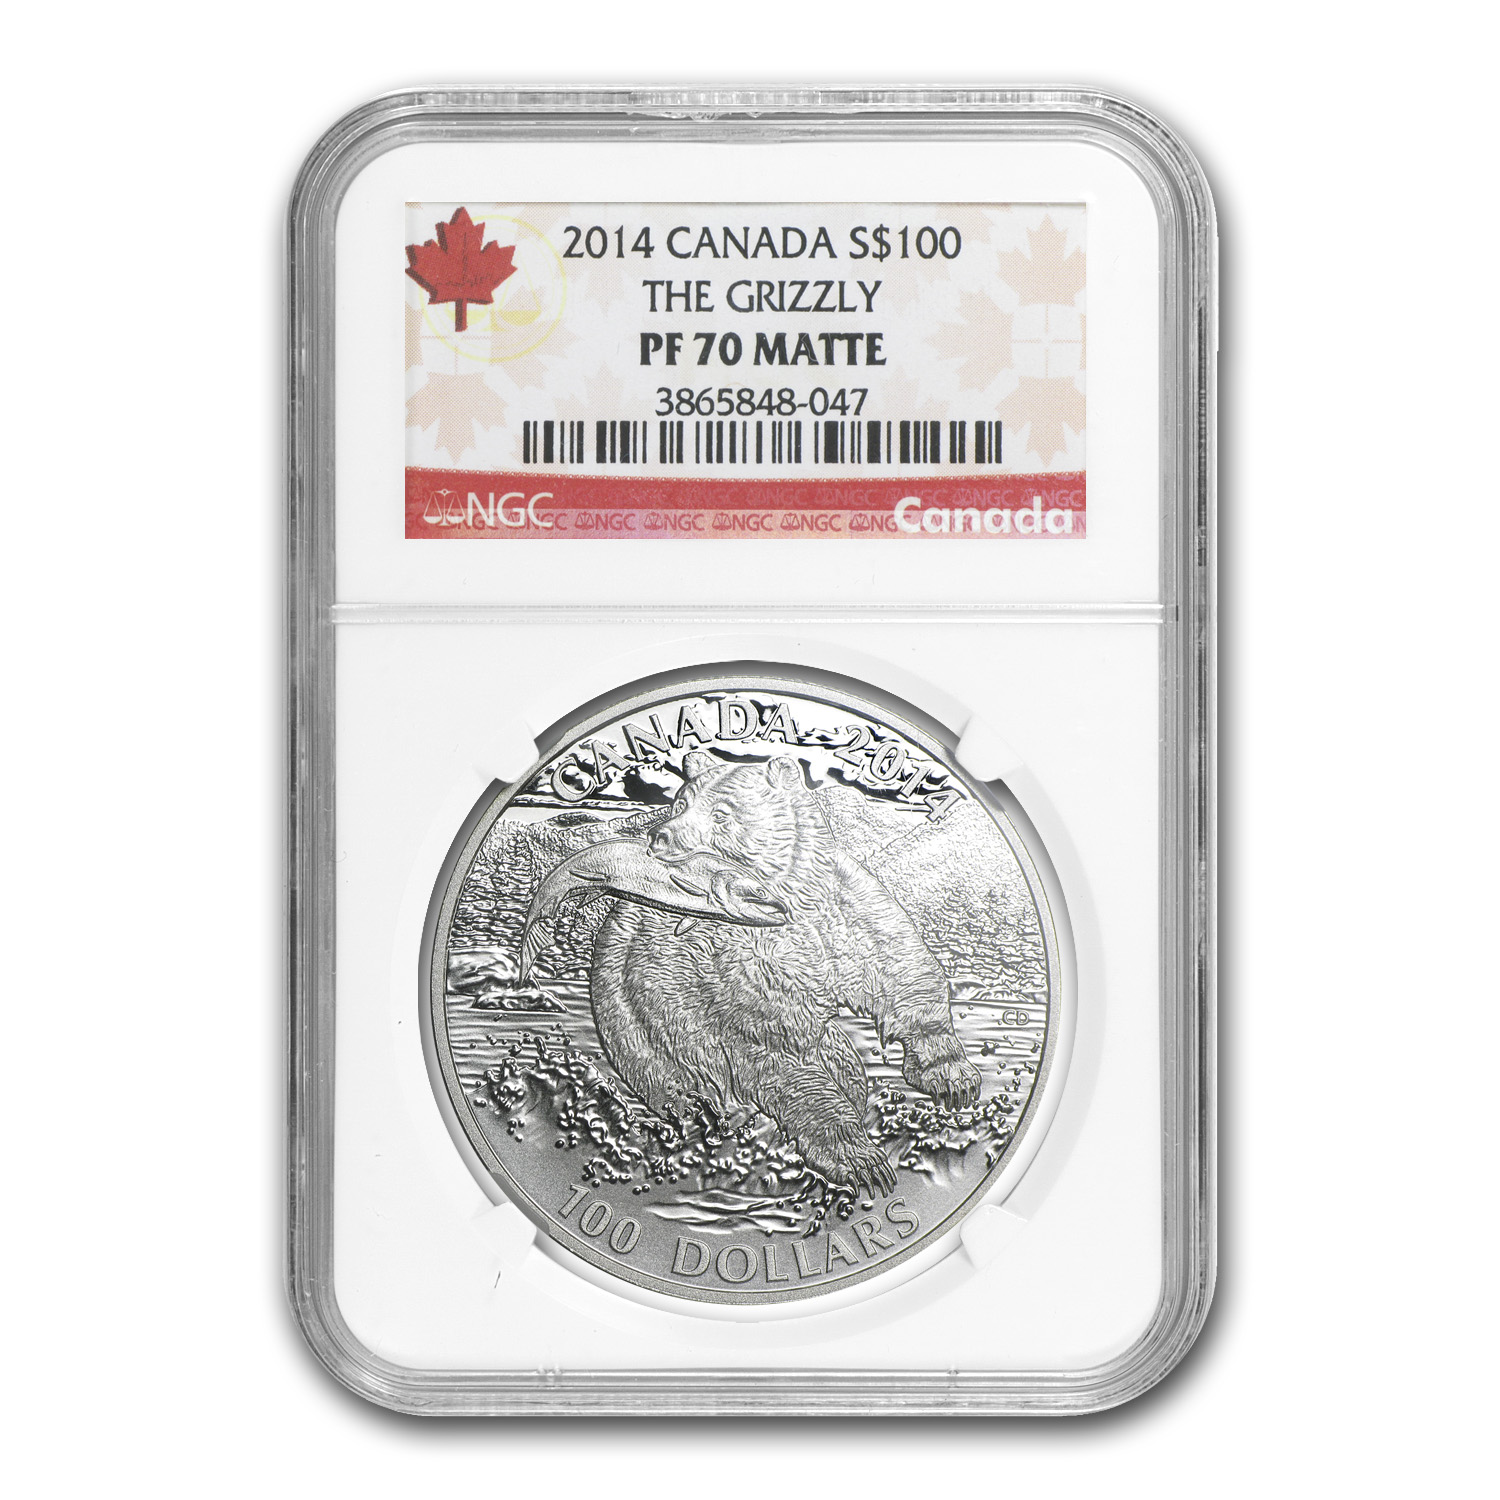 2014 1 oz Silver Canadian $100 - Grizzly Bear - PF-70 Matte - NGC